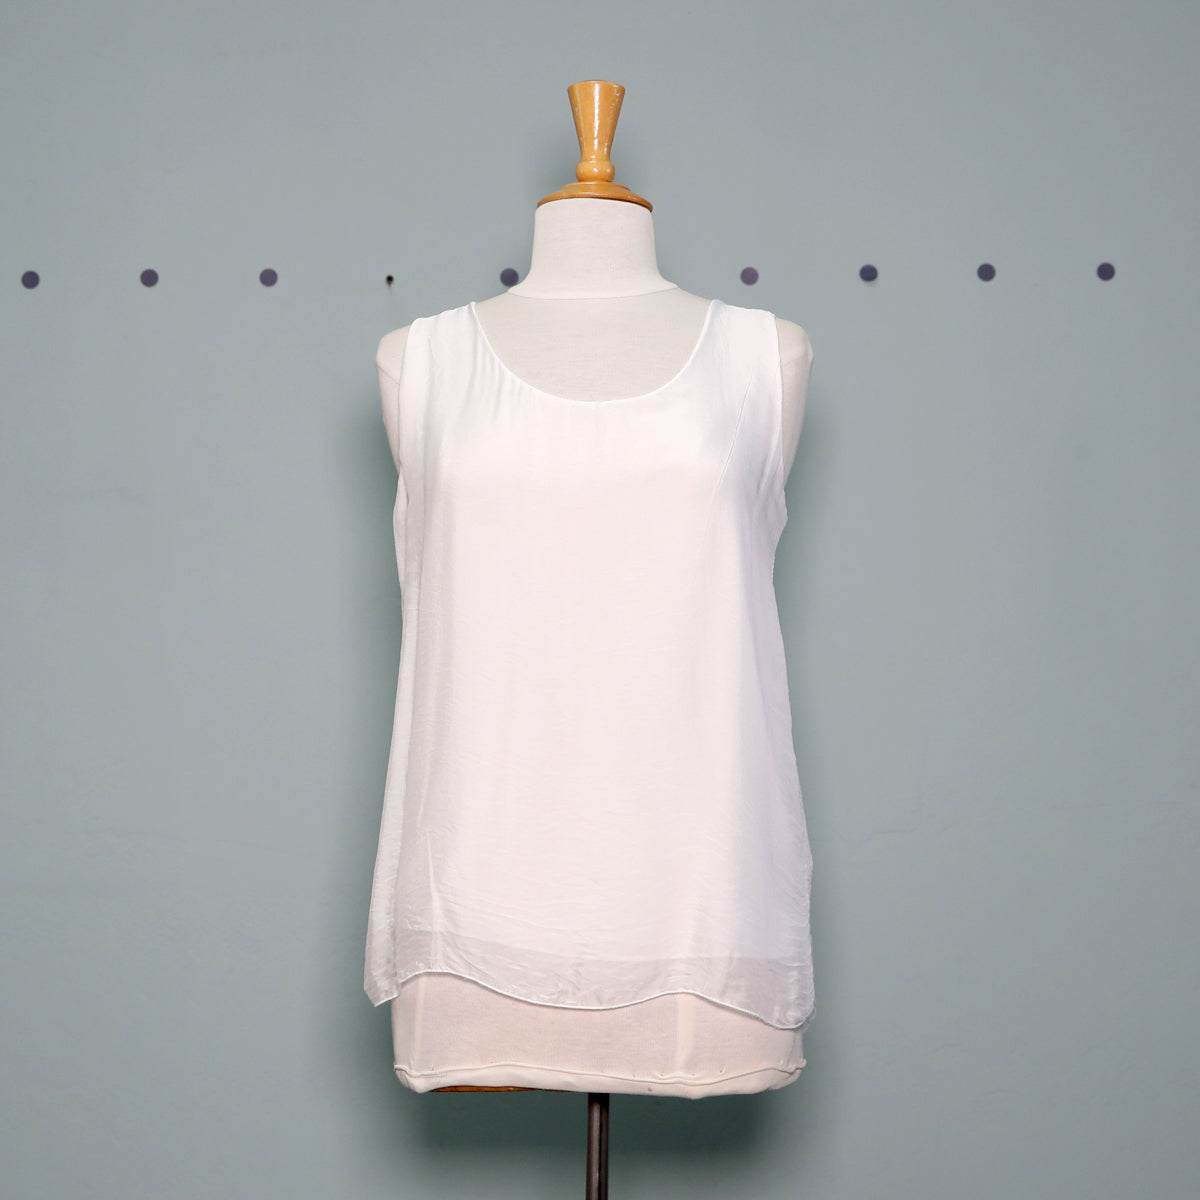 M Made in Italy Layered Tank in White